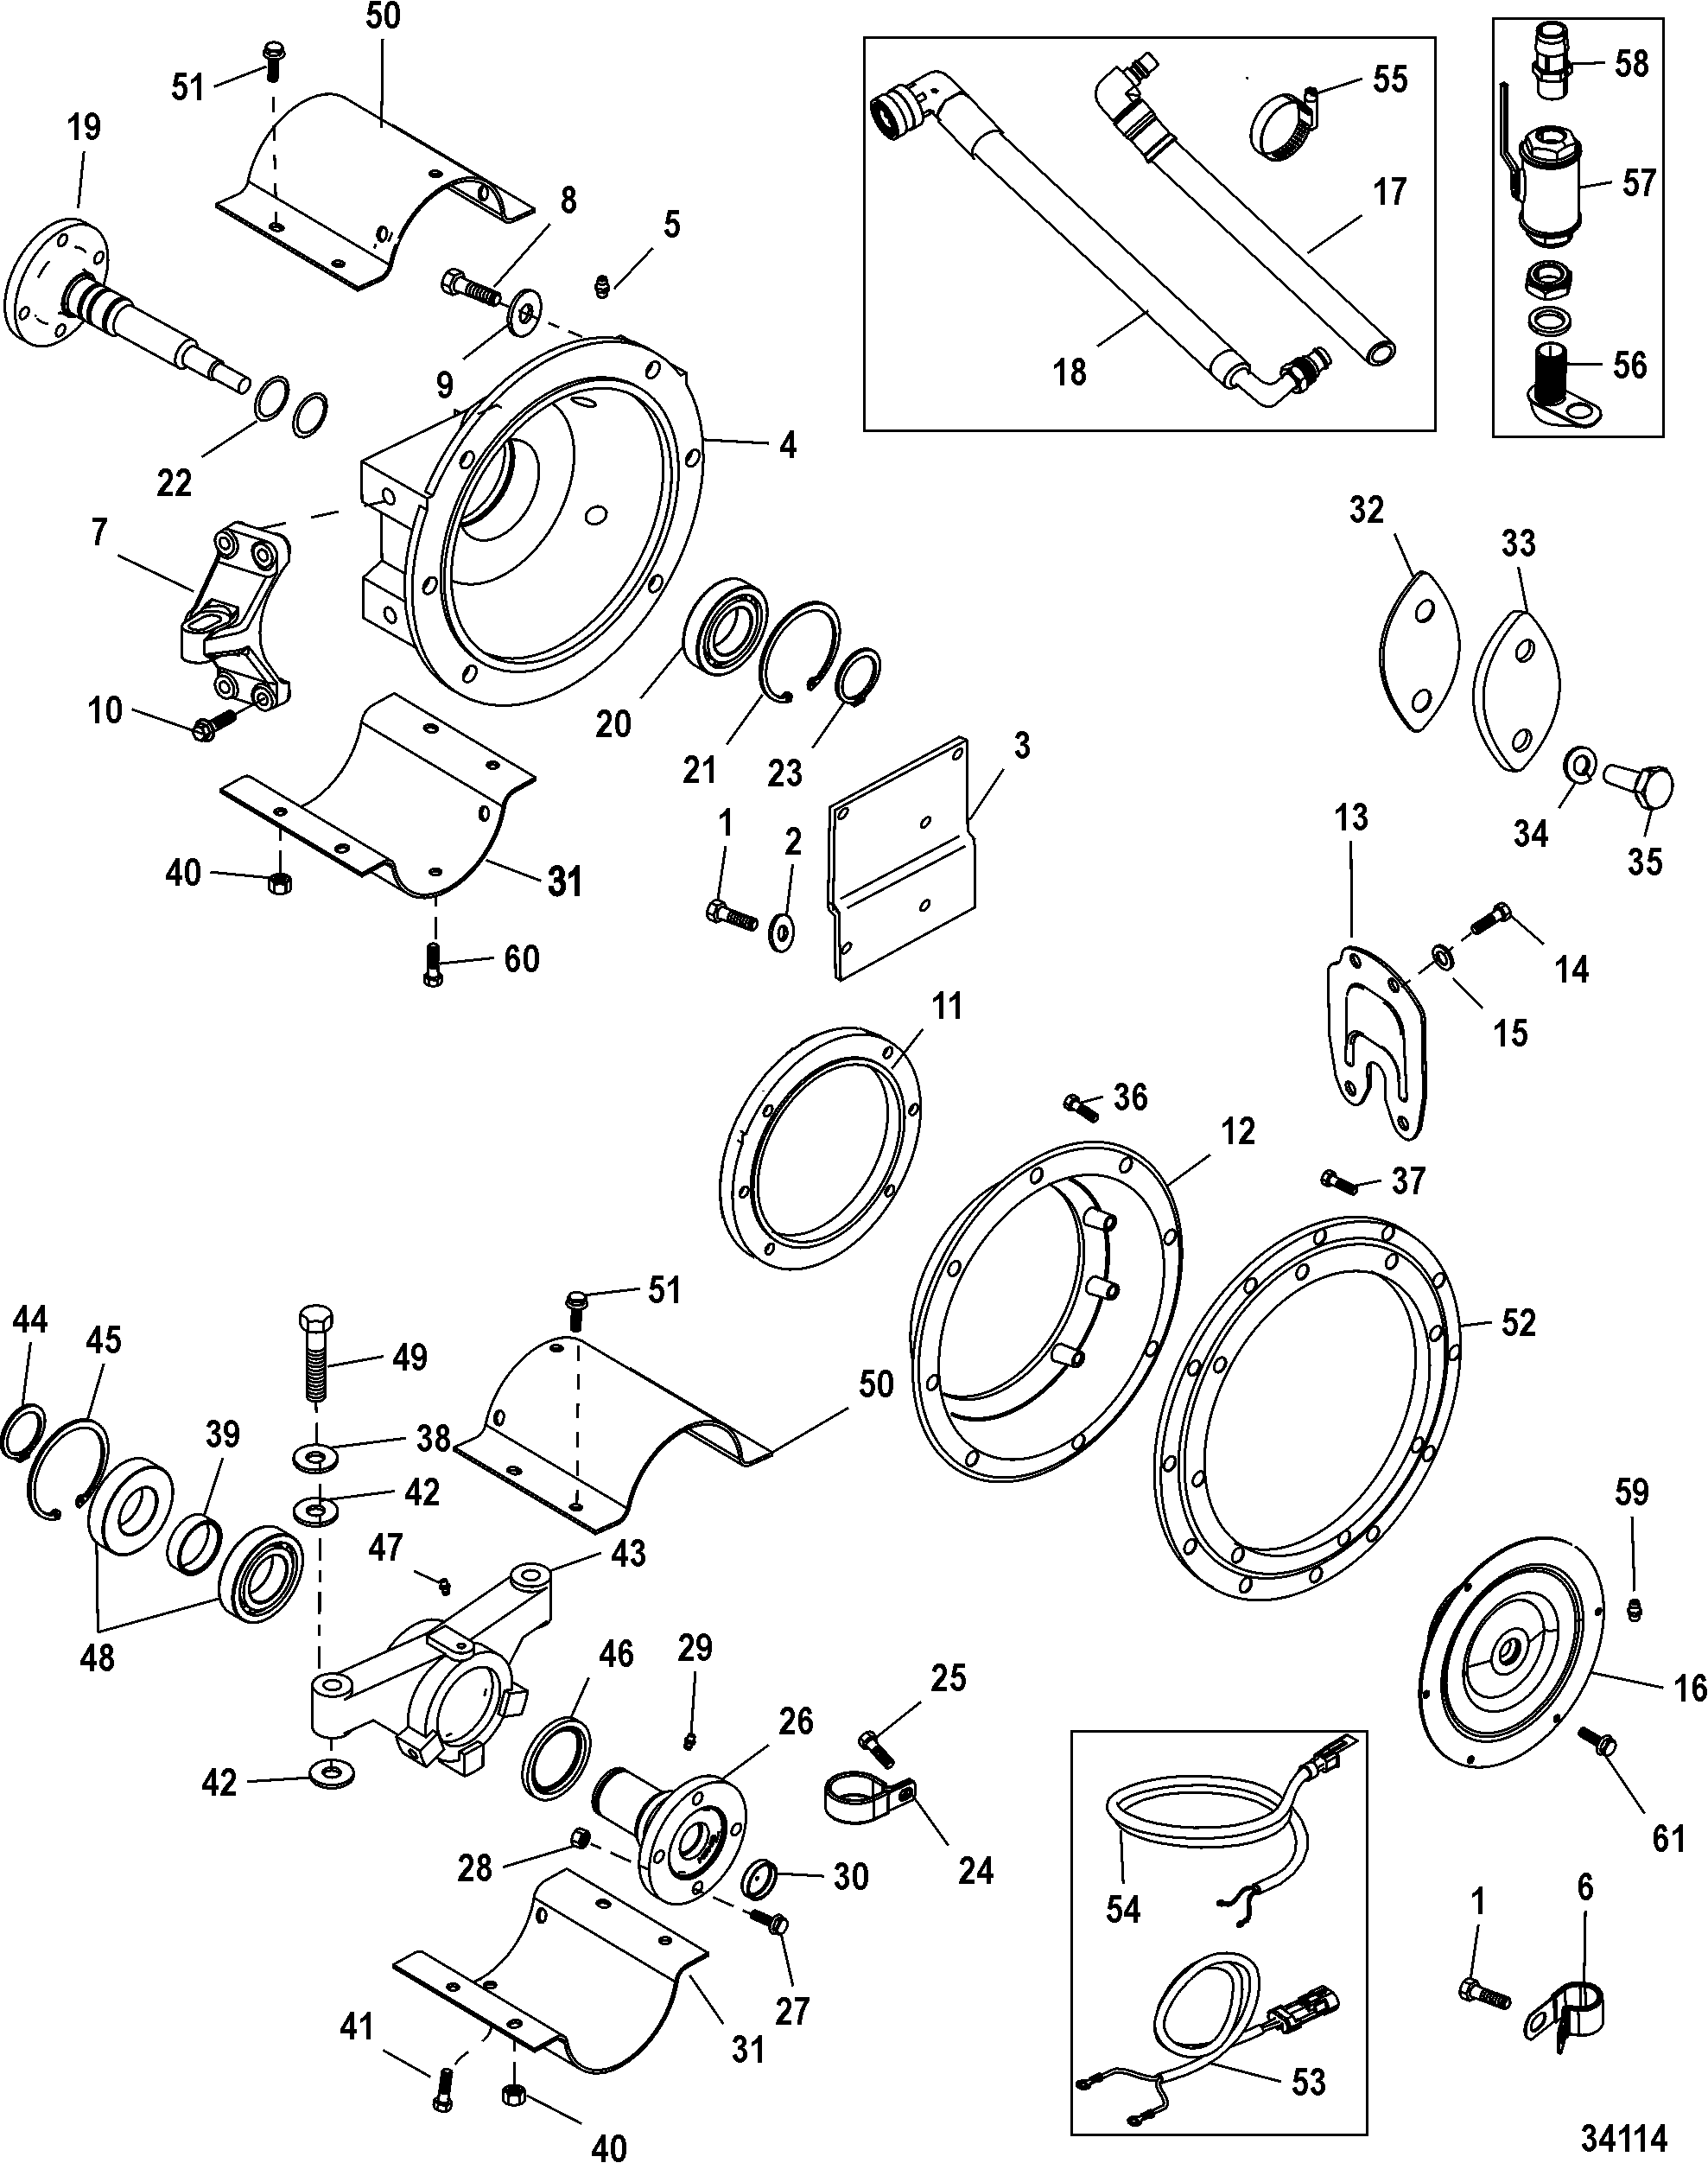 Jackshaft Components FOR MERCRUISER / MIE CUMMINS